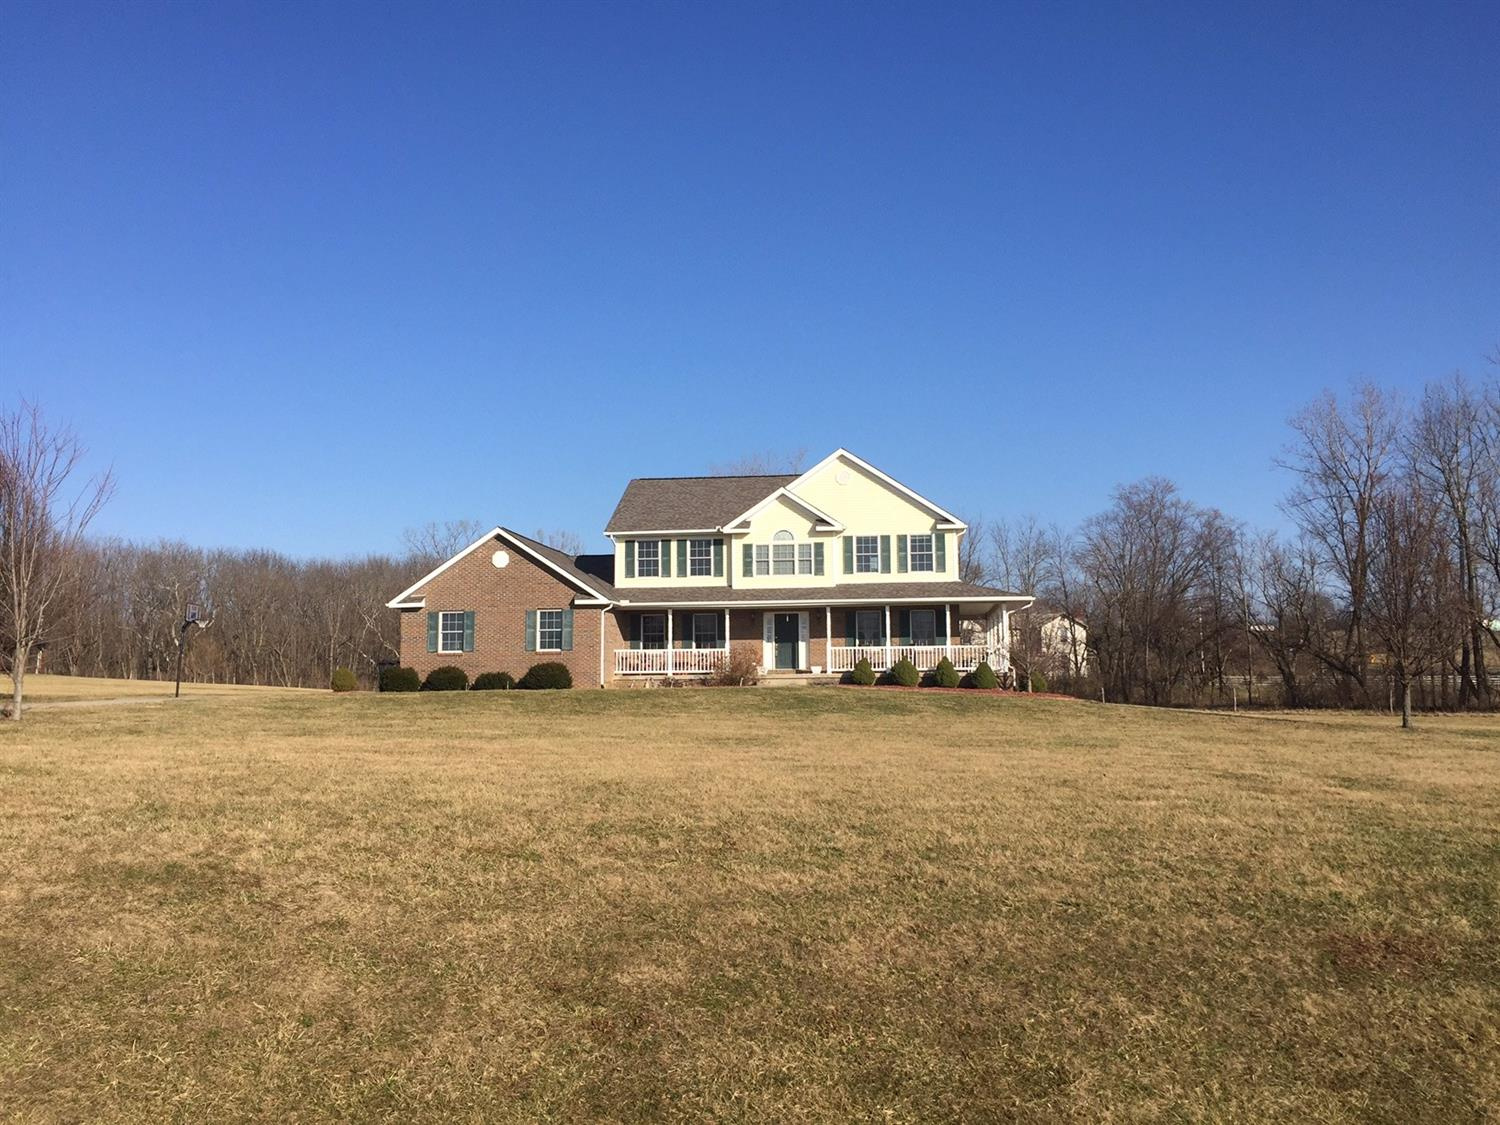 4234 Windy Meadows Dr Wayne Twp. (Butler Co.), OH